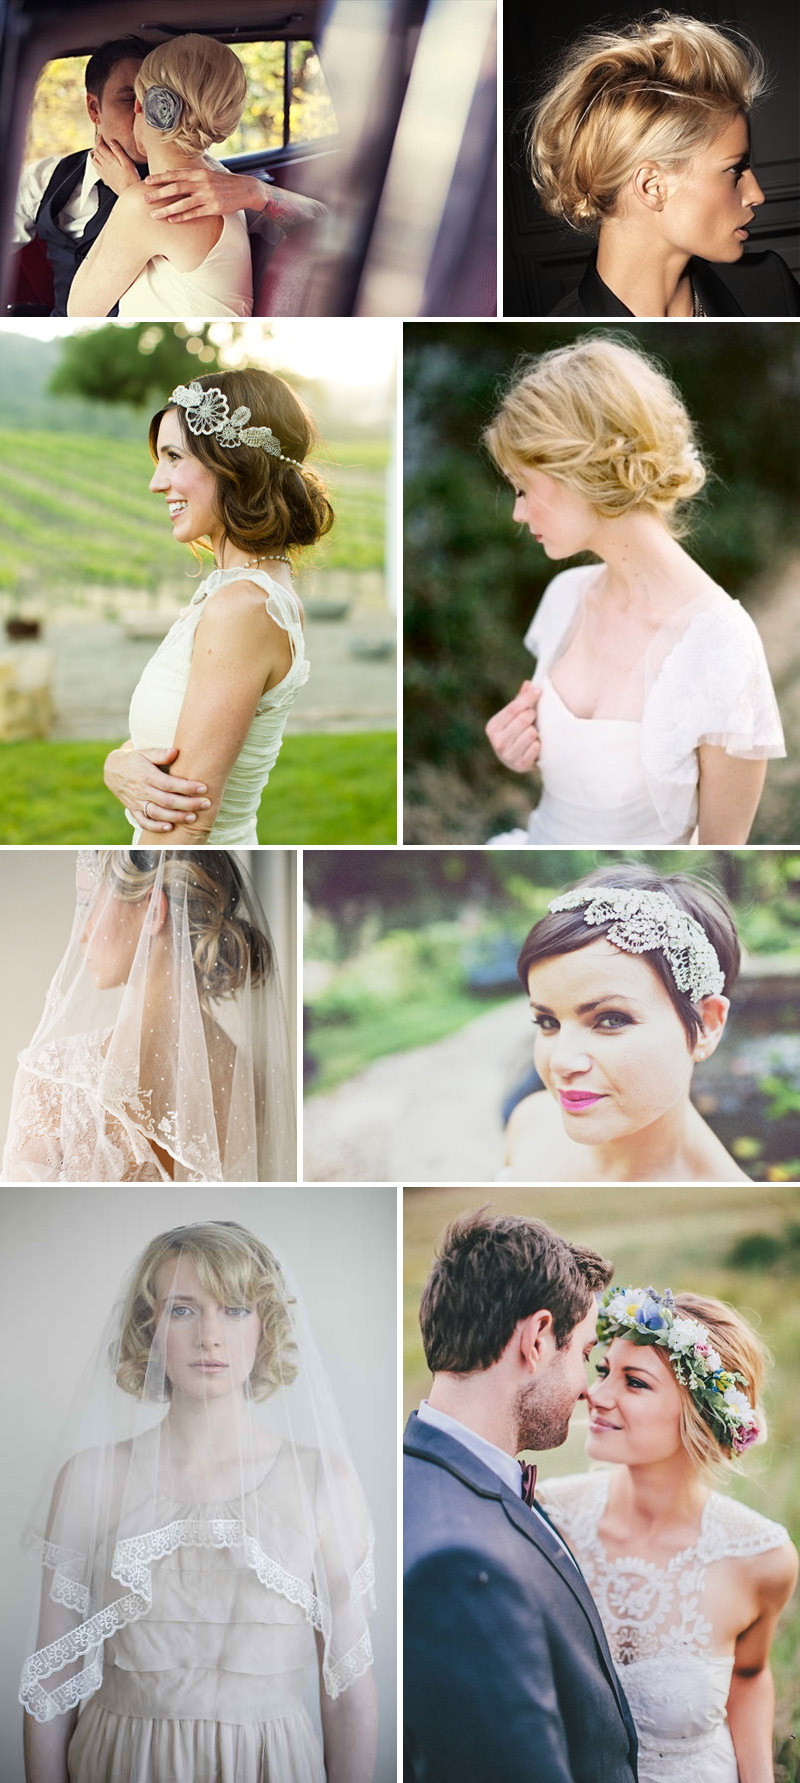 Short and Sweet Wedding Hair Inspiration